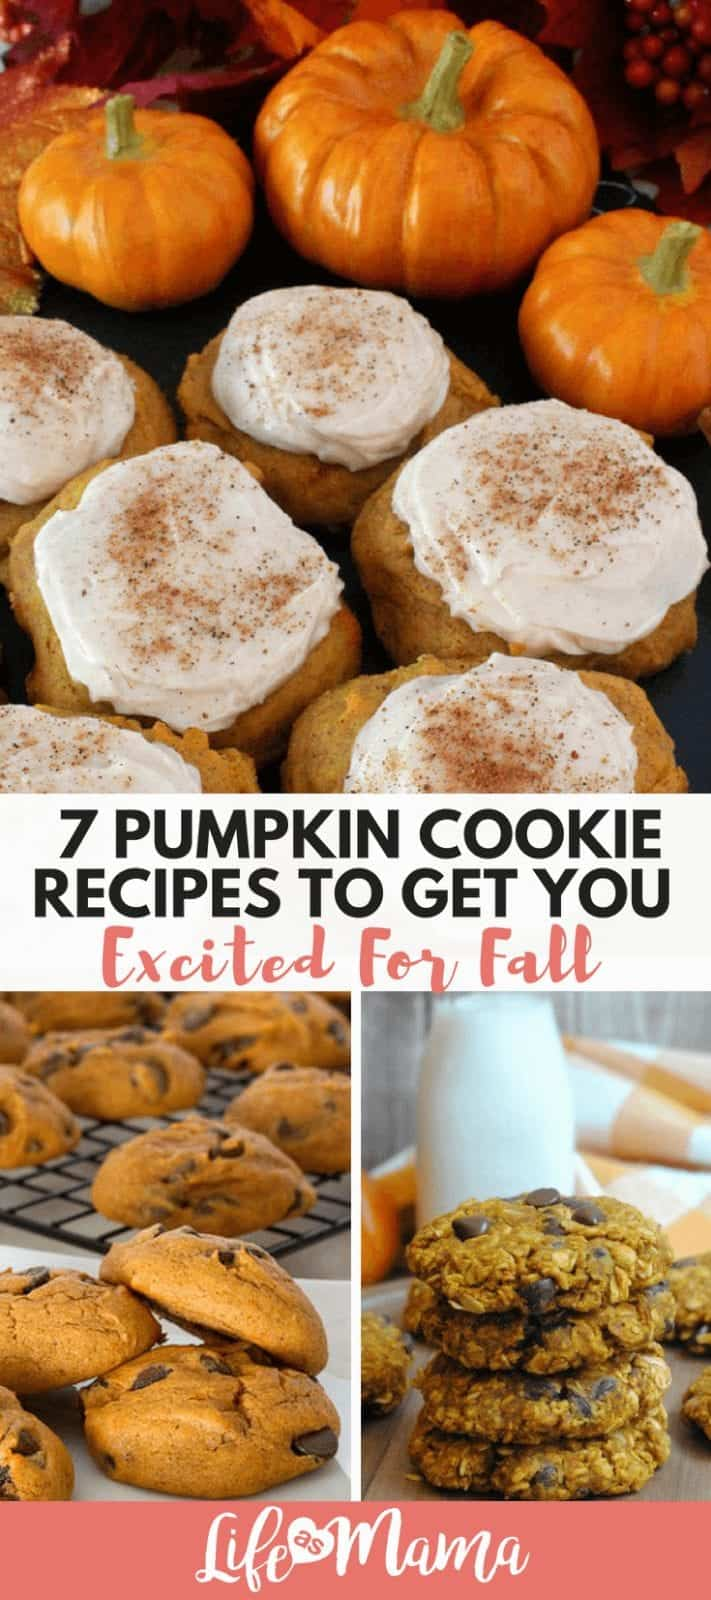 7 Pumpkin Cookie Recipes To Get You Excited For Fall